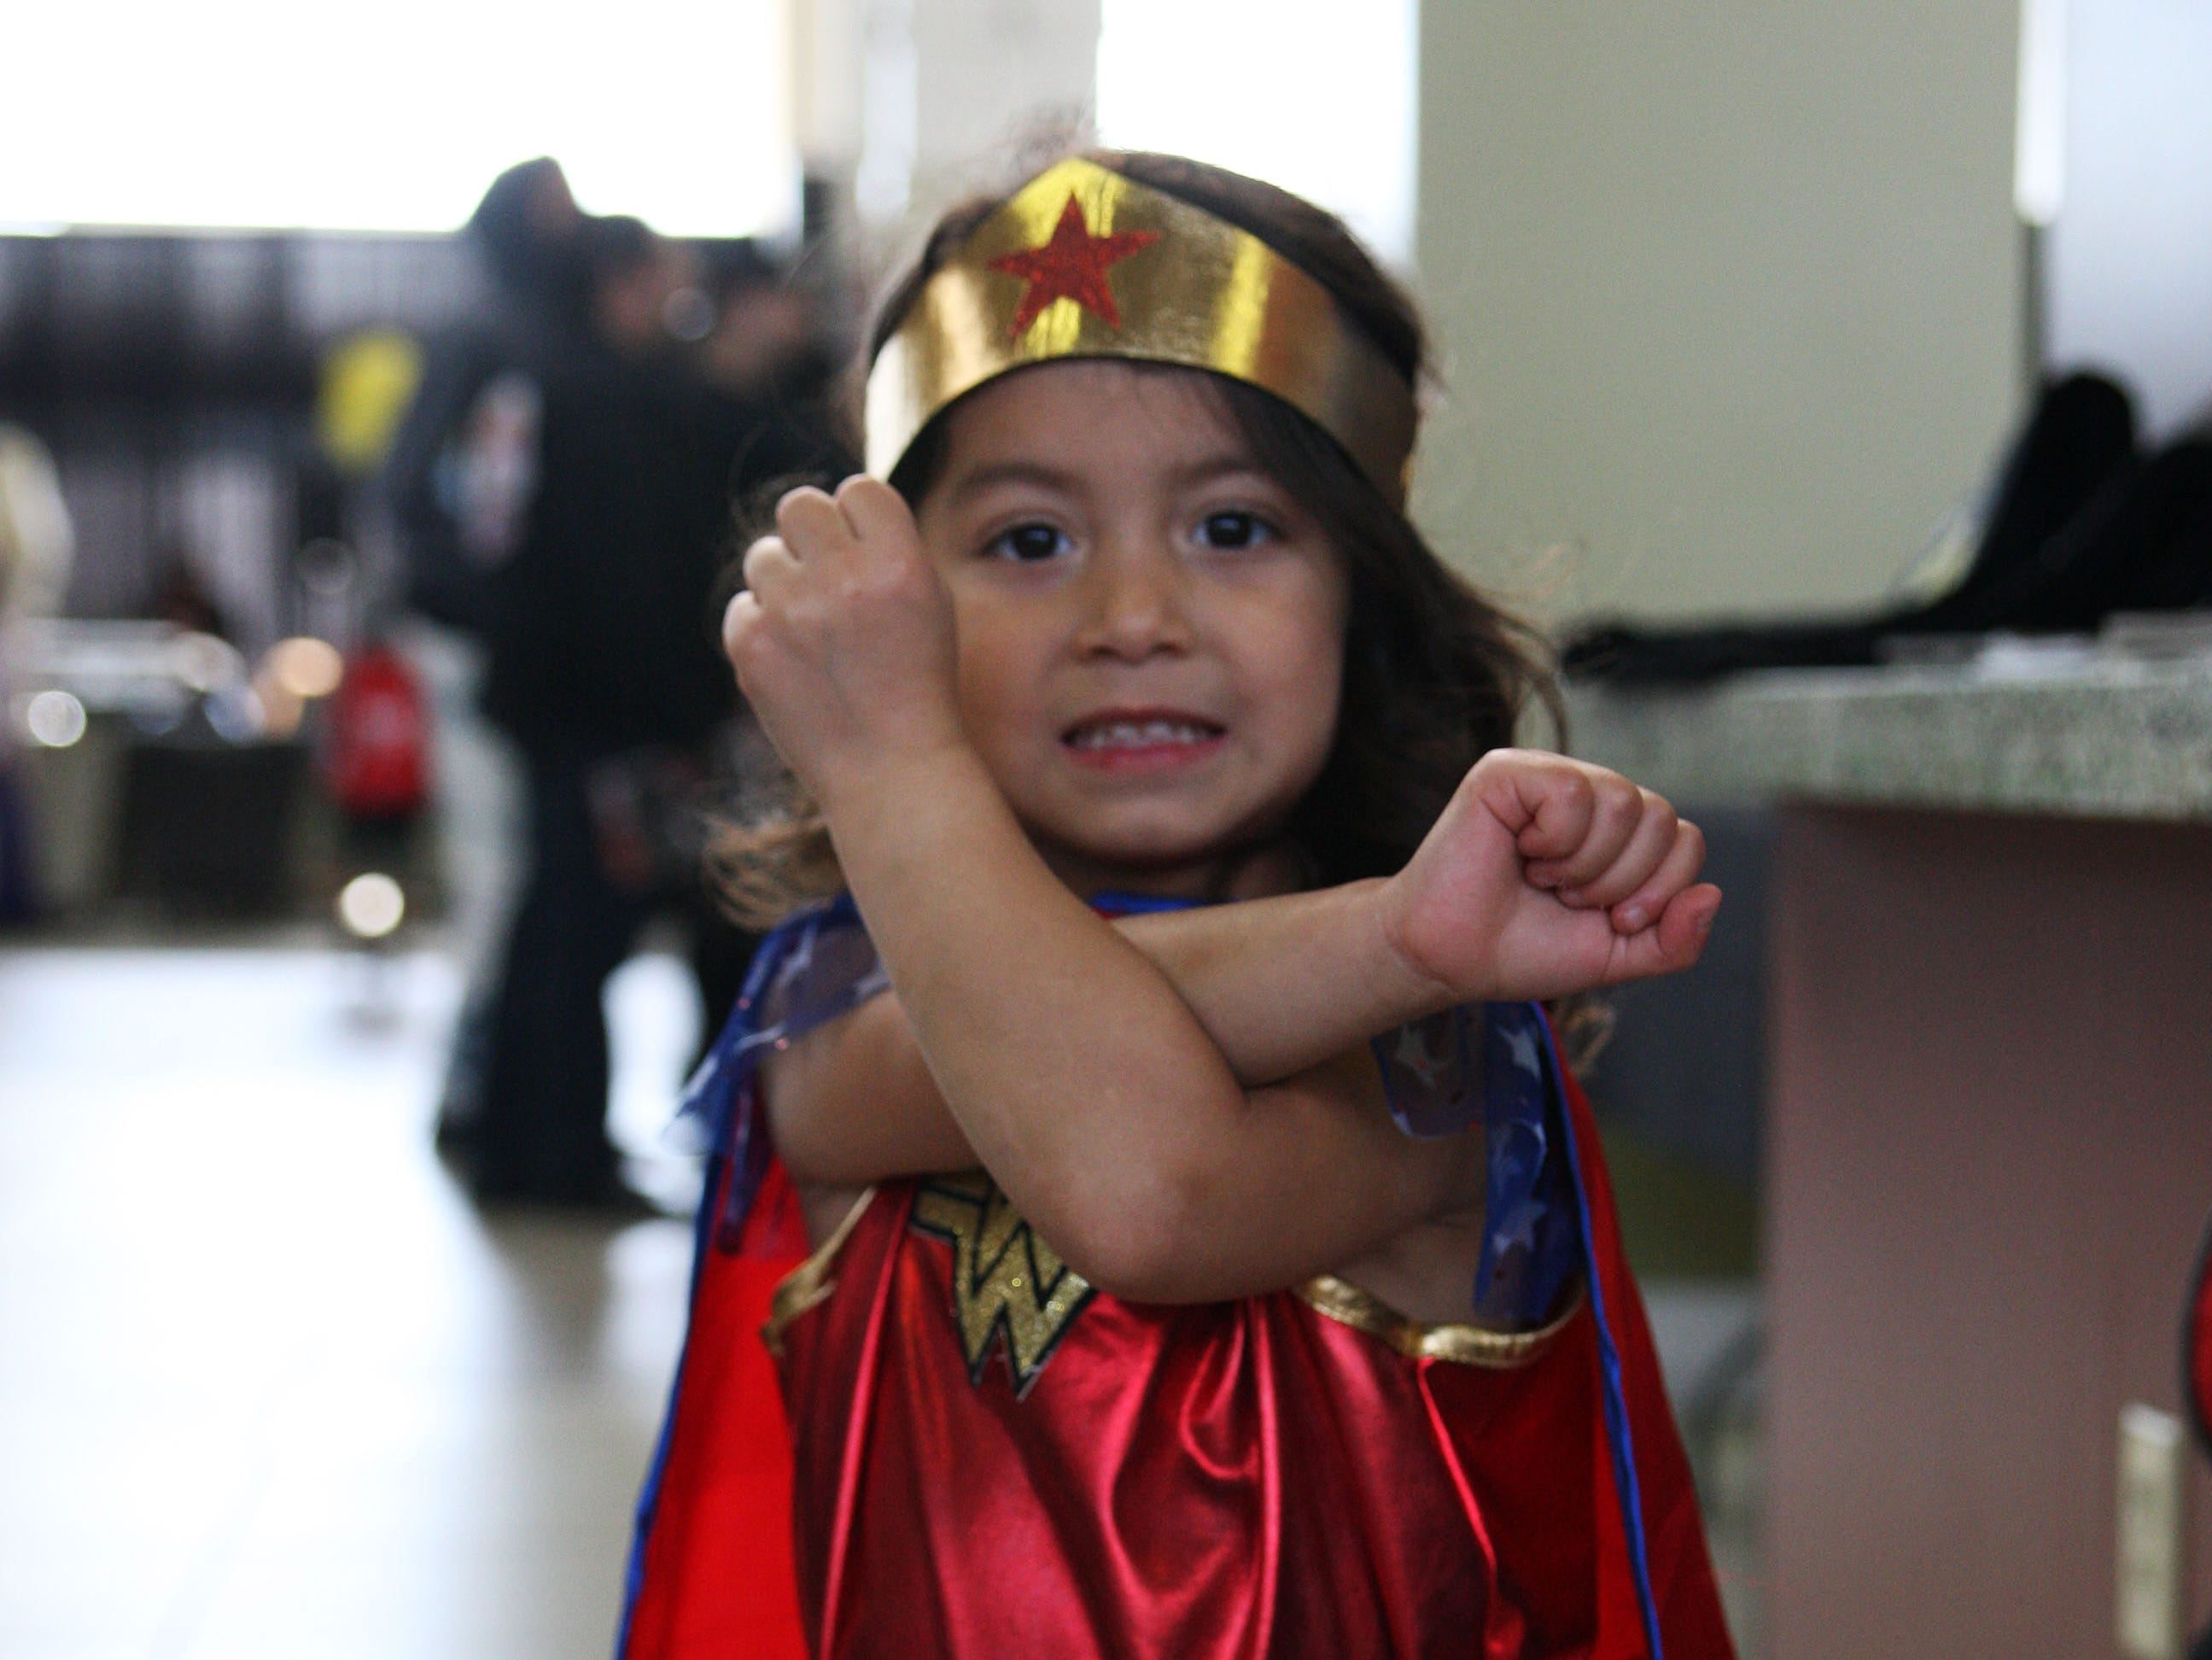 Emma Aileen Bernal-Samaro poses in her Wonder Woman costume at Comic Con put on by the Steinbeck Center in Salinas.